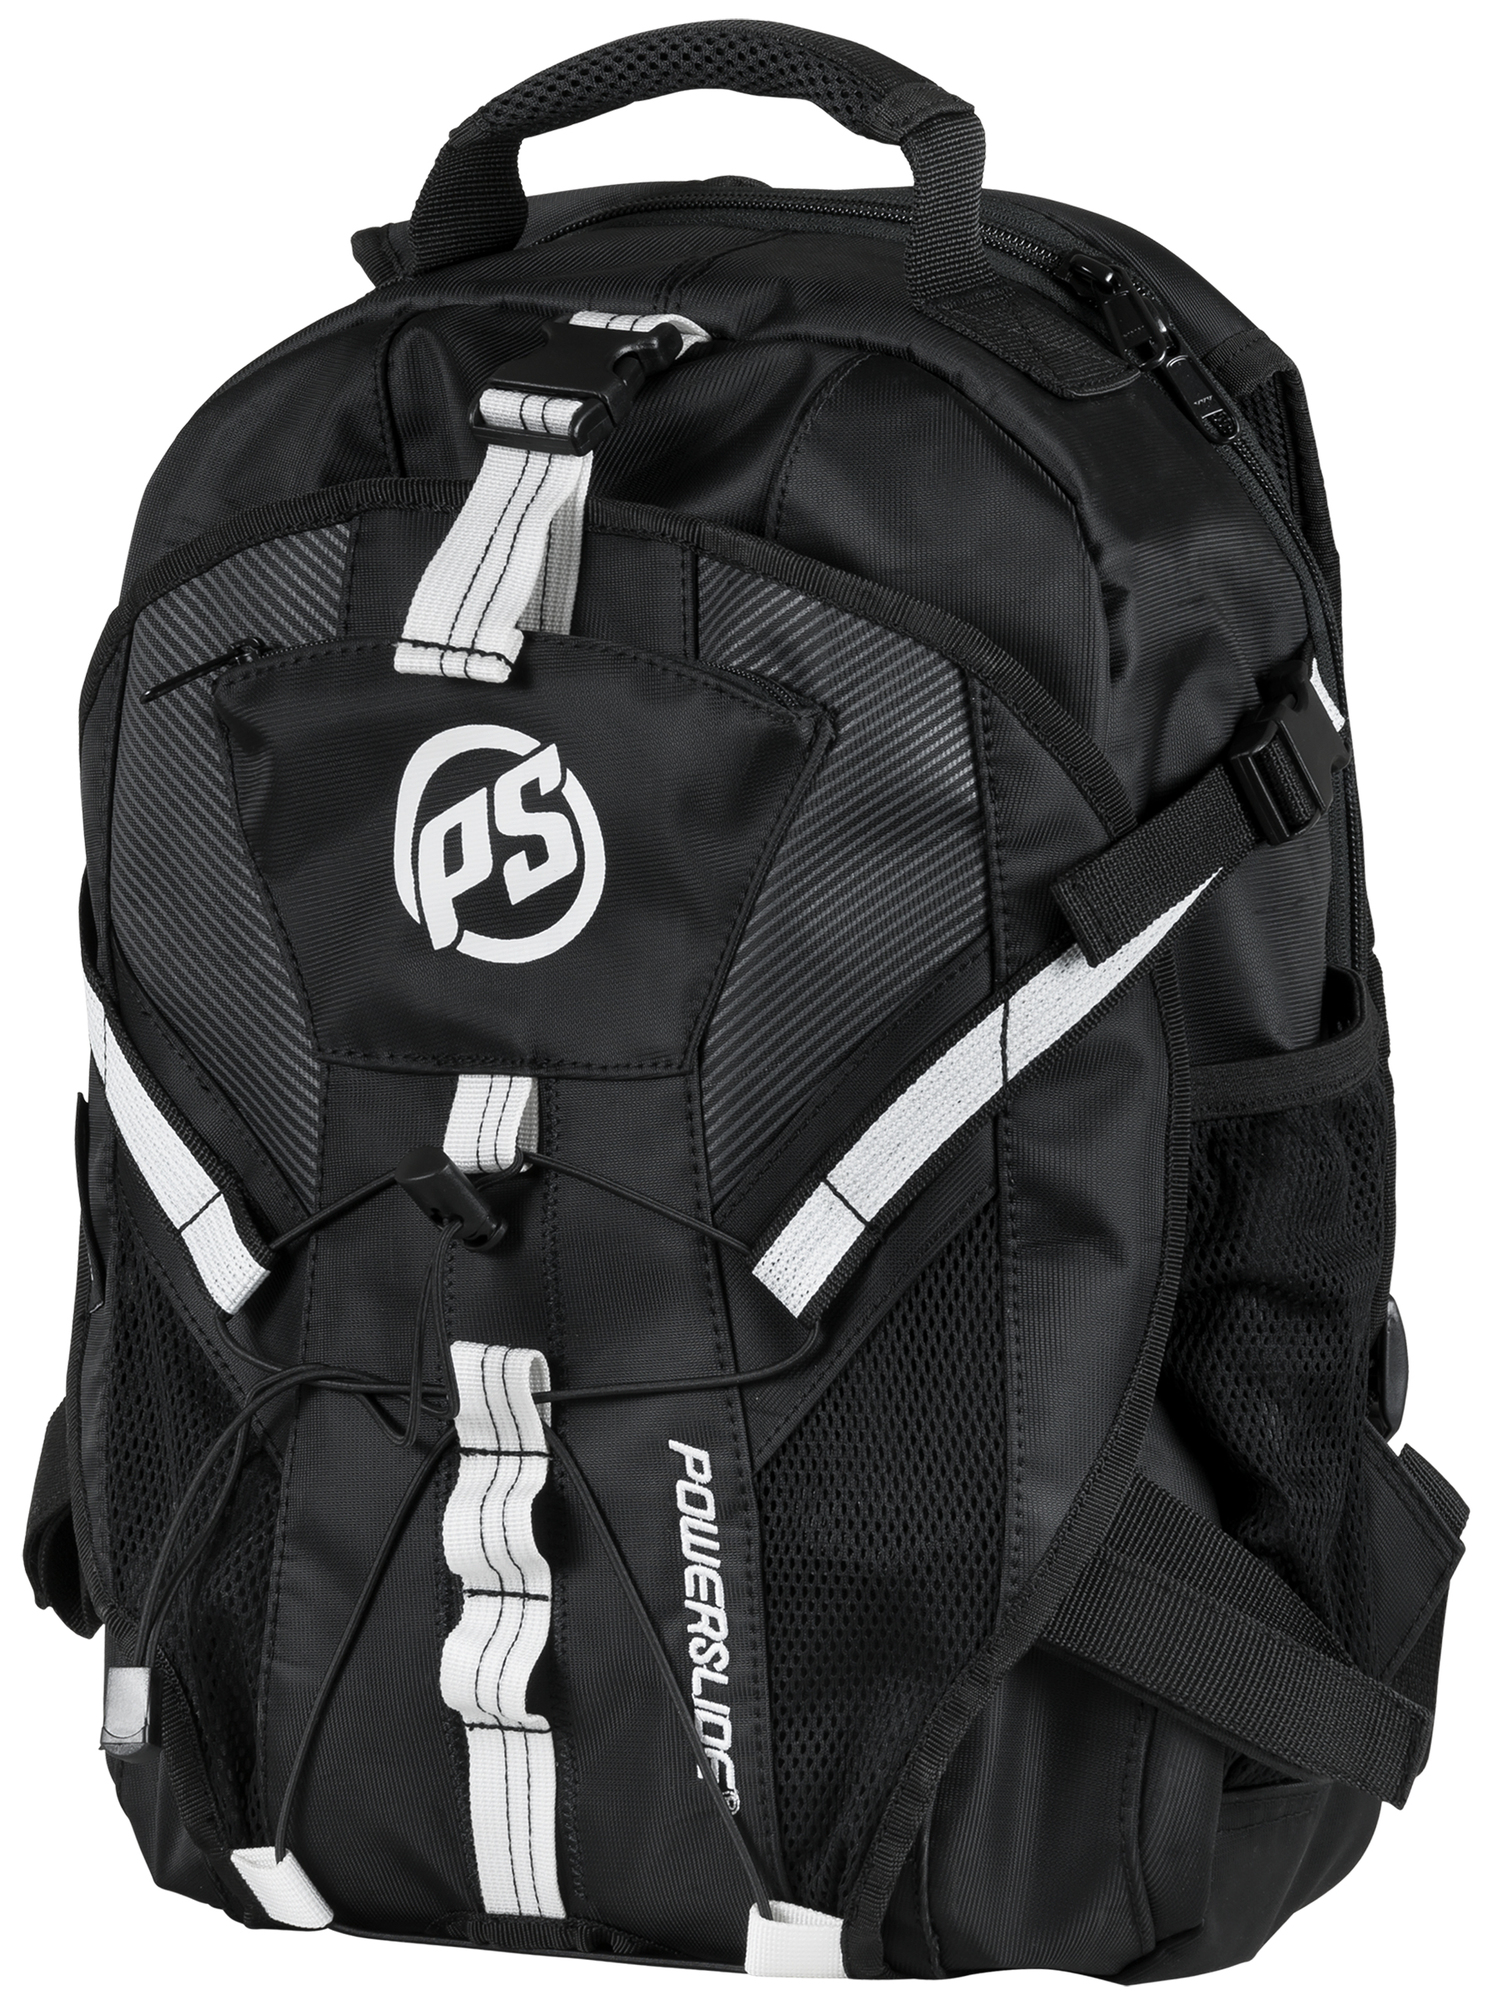 Batoh Powerslide Fitness Backpack Black 13,6l